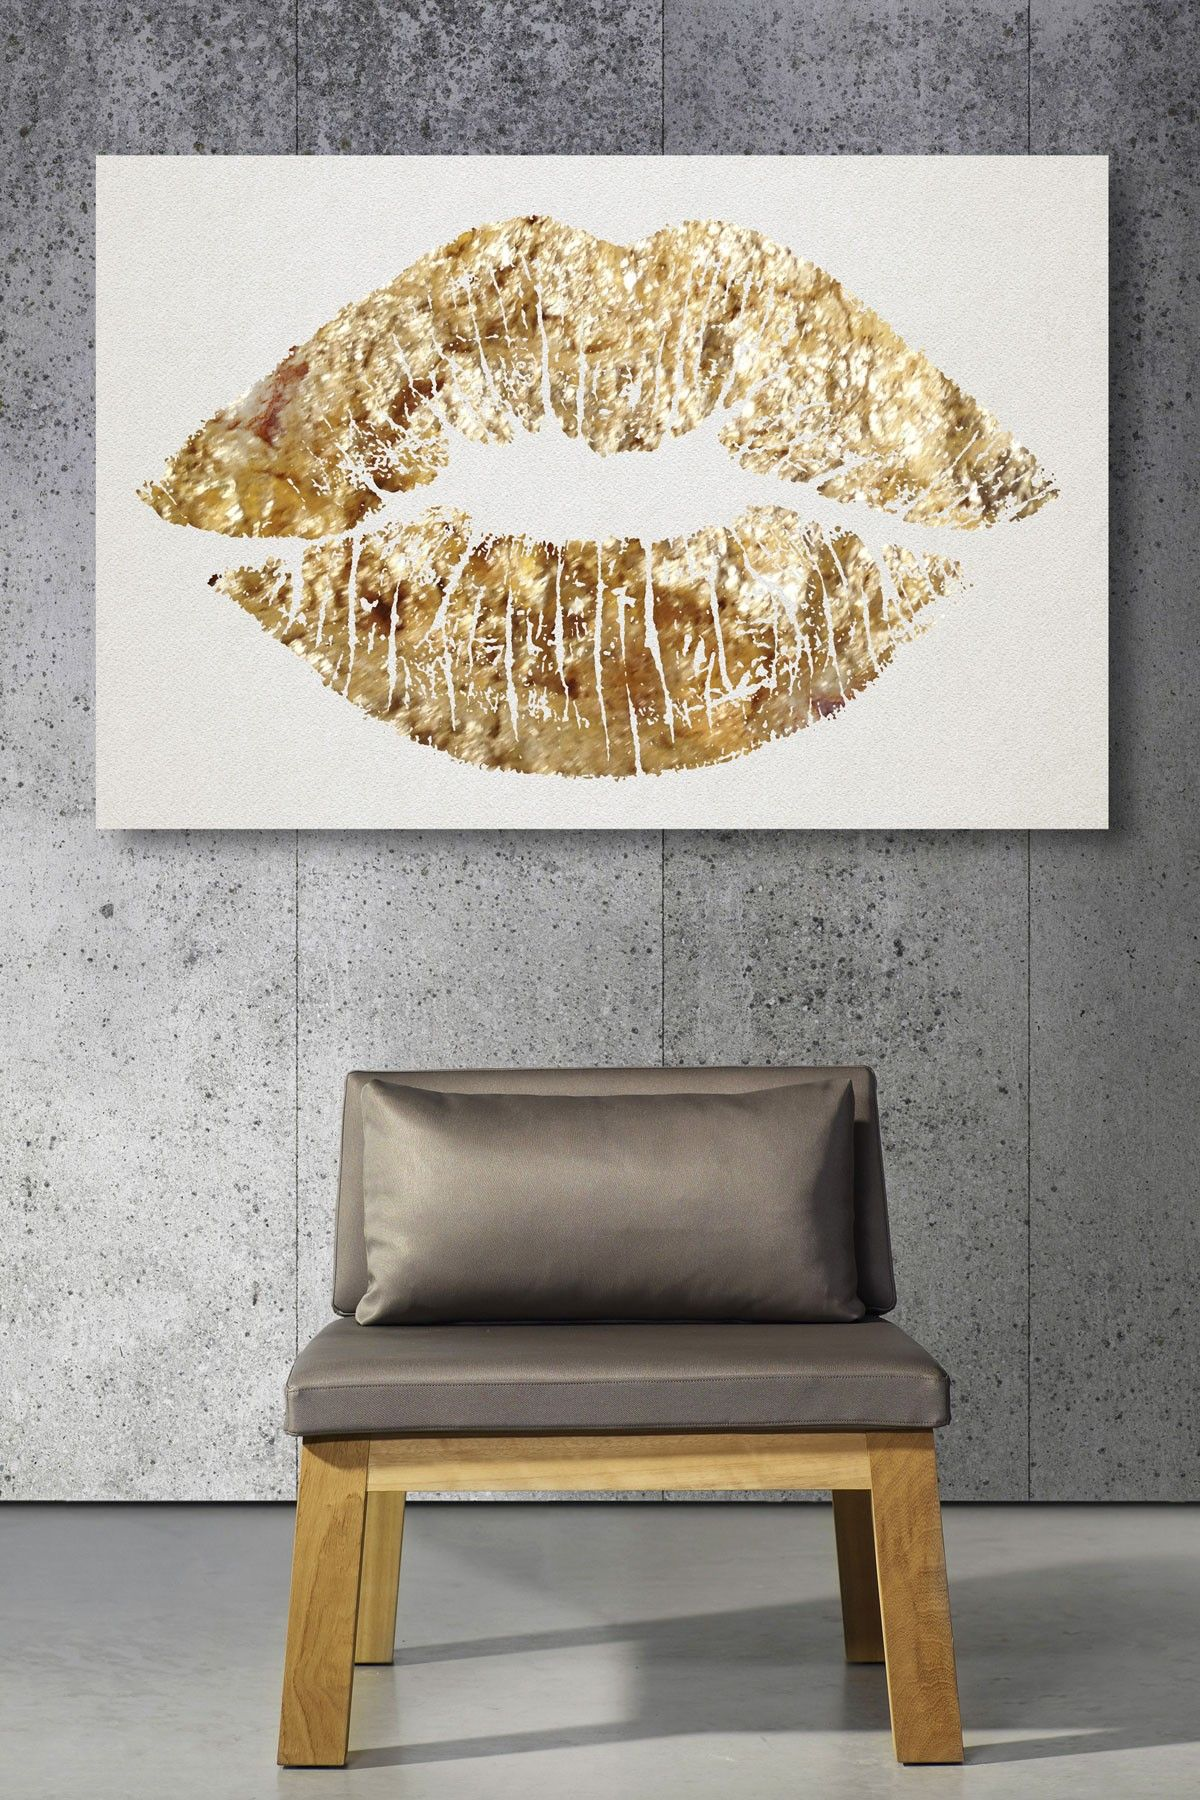 Silver And Gold Wall Art gold | ゴールド | gōrudo | gylden | oro | metal | metallic | shape